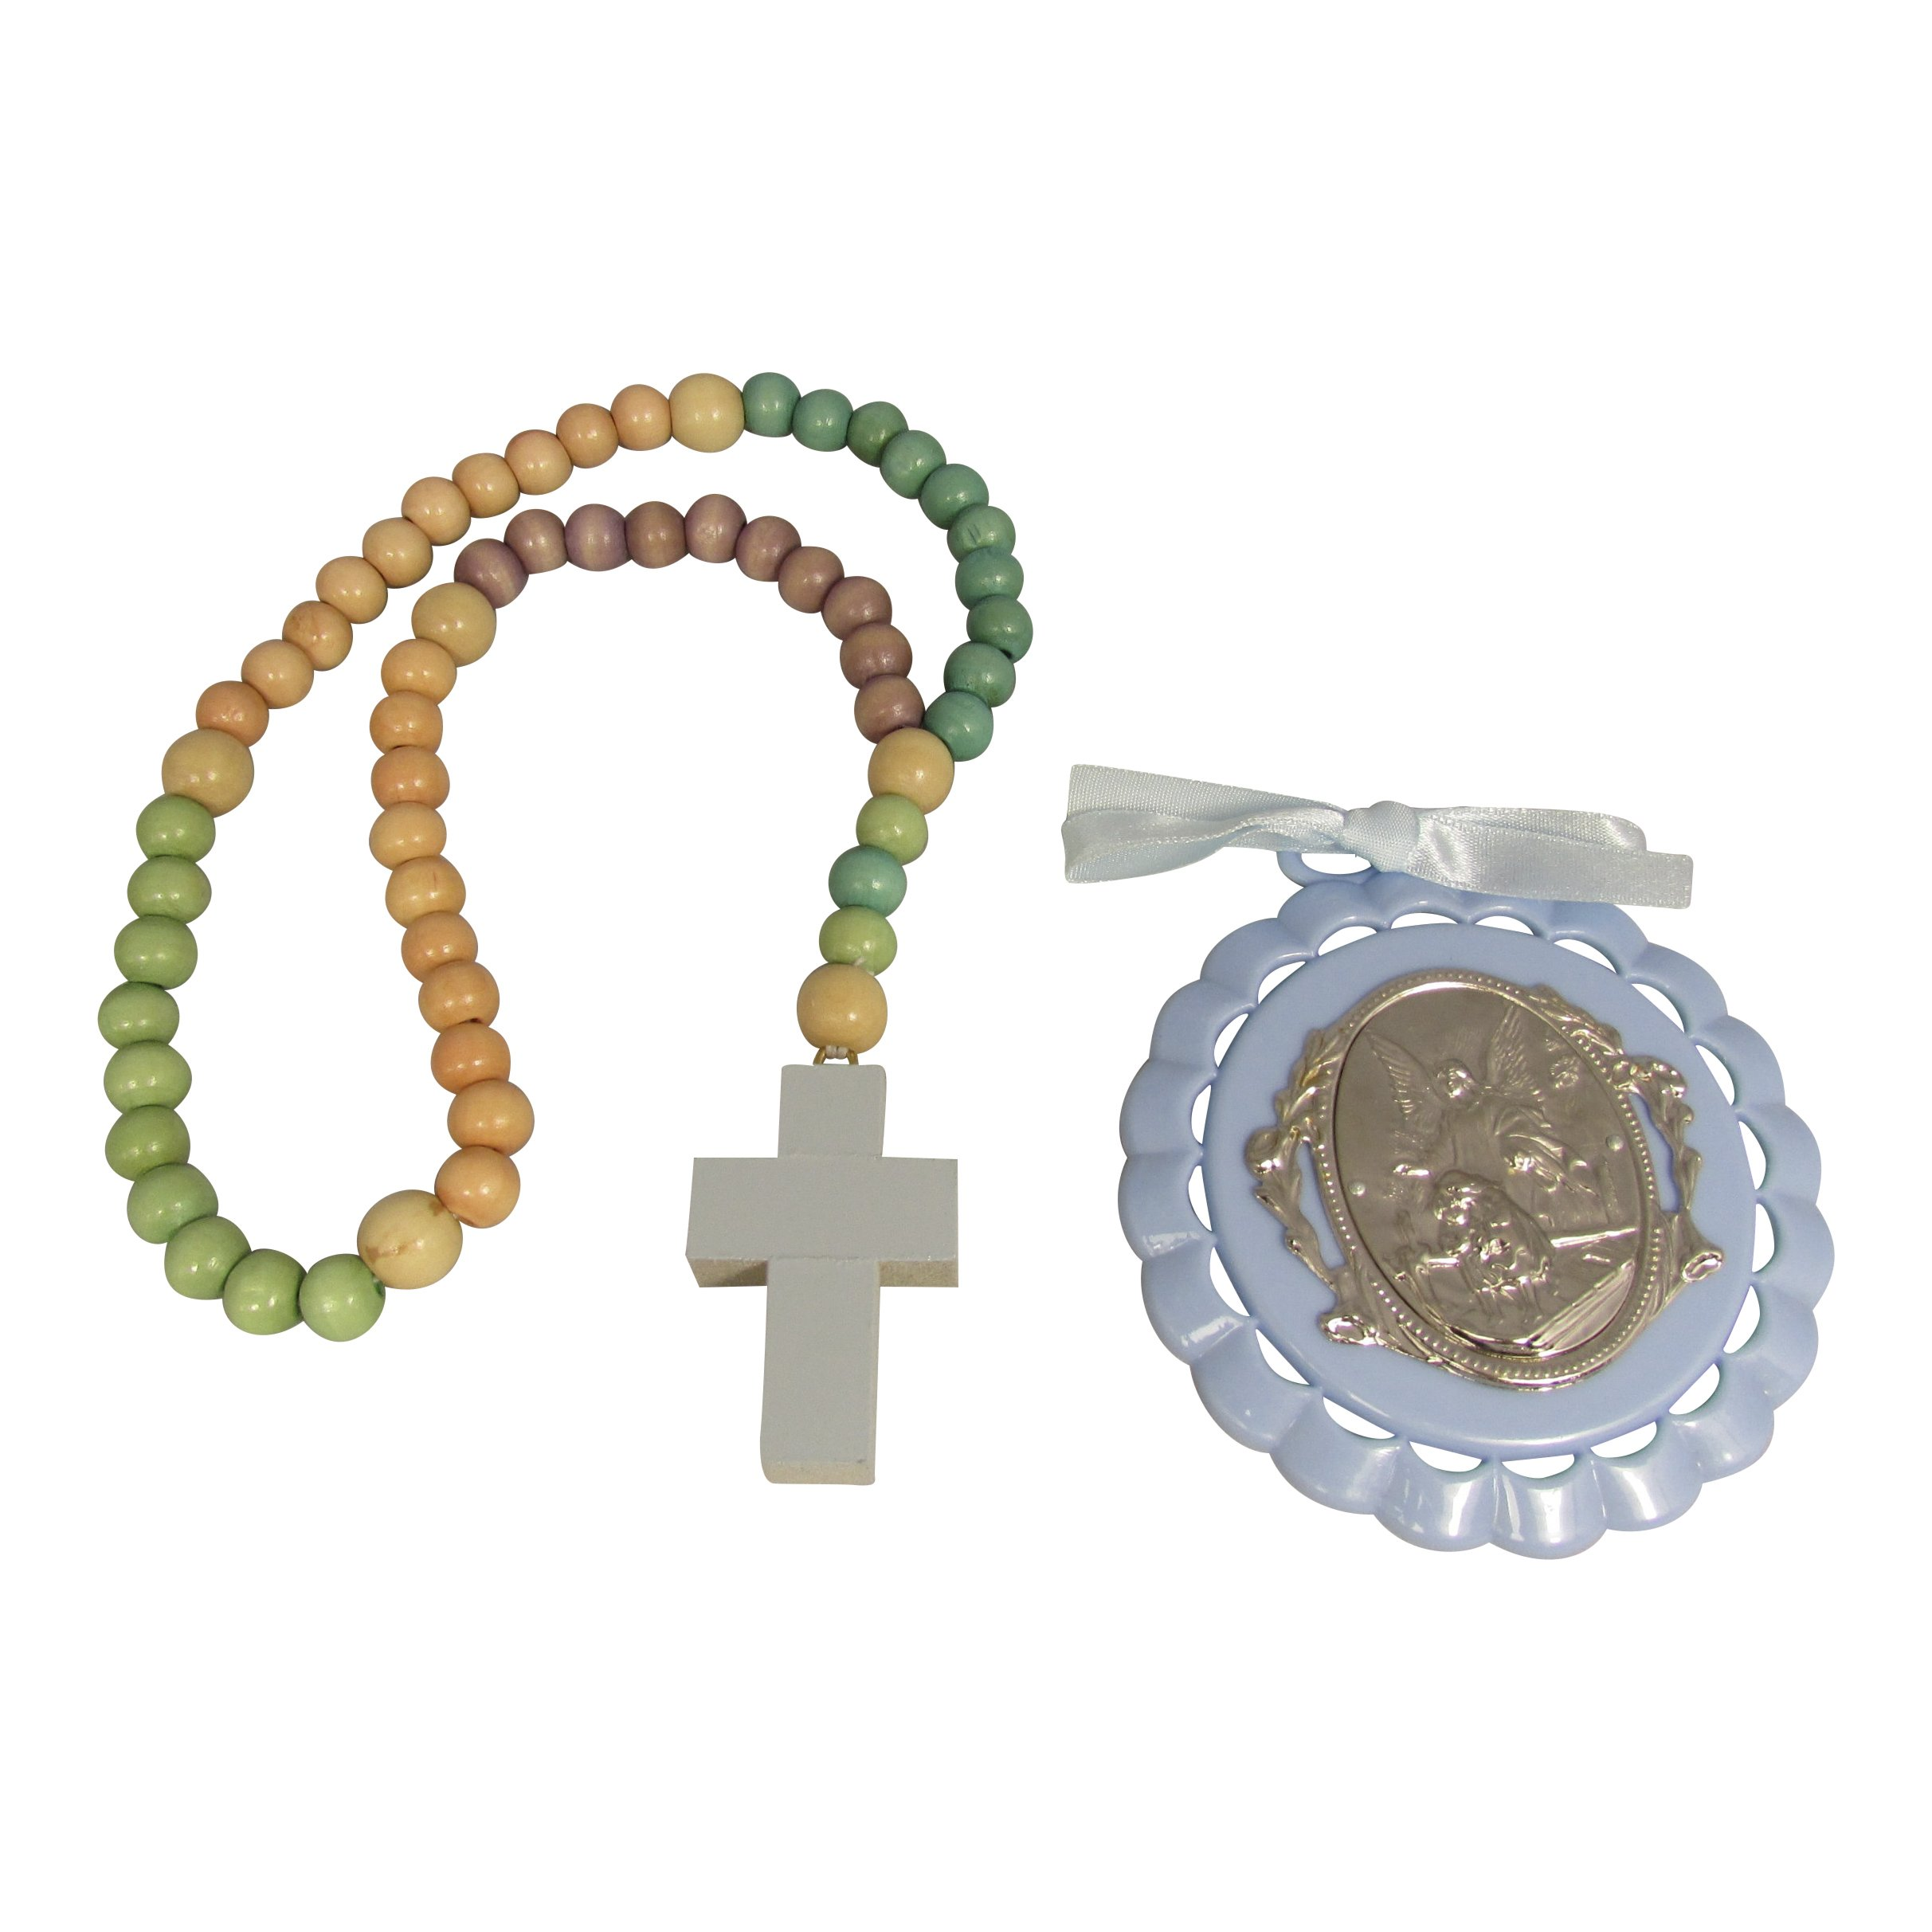 Non Toxic Wooden Kiddie Rosary with 5 Different Colors 21-inch Boxed with Crib Medal, Nice Baby Christening or Nursery Gift (Boys/Blue)